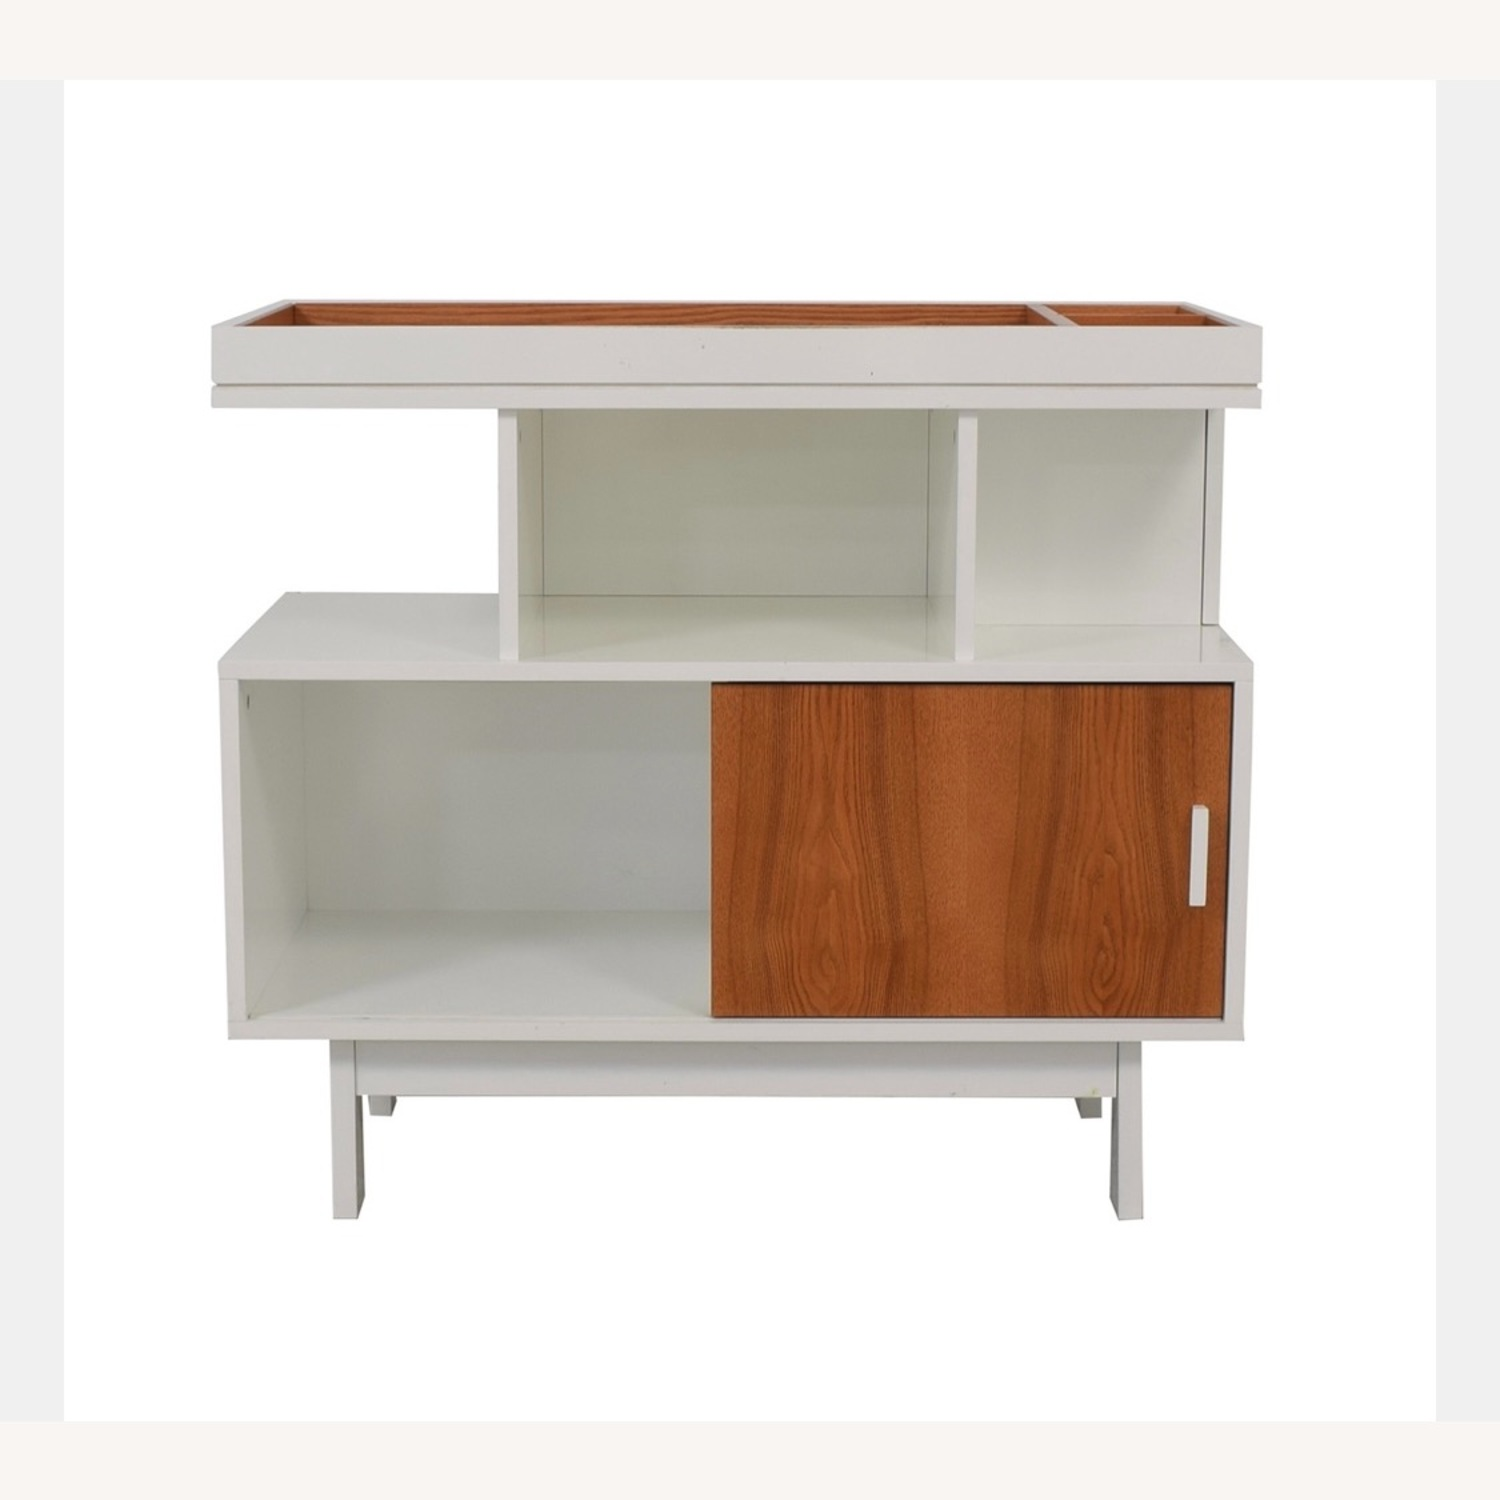 David Netto Changing Table - image-5